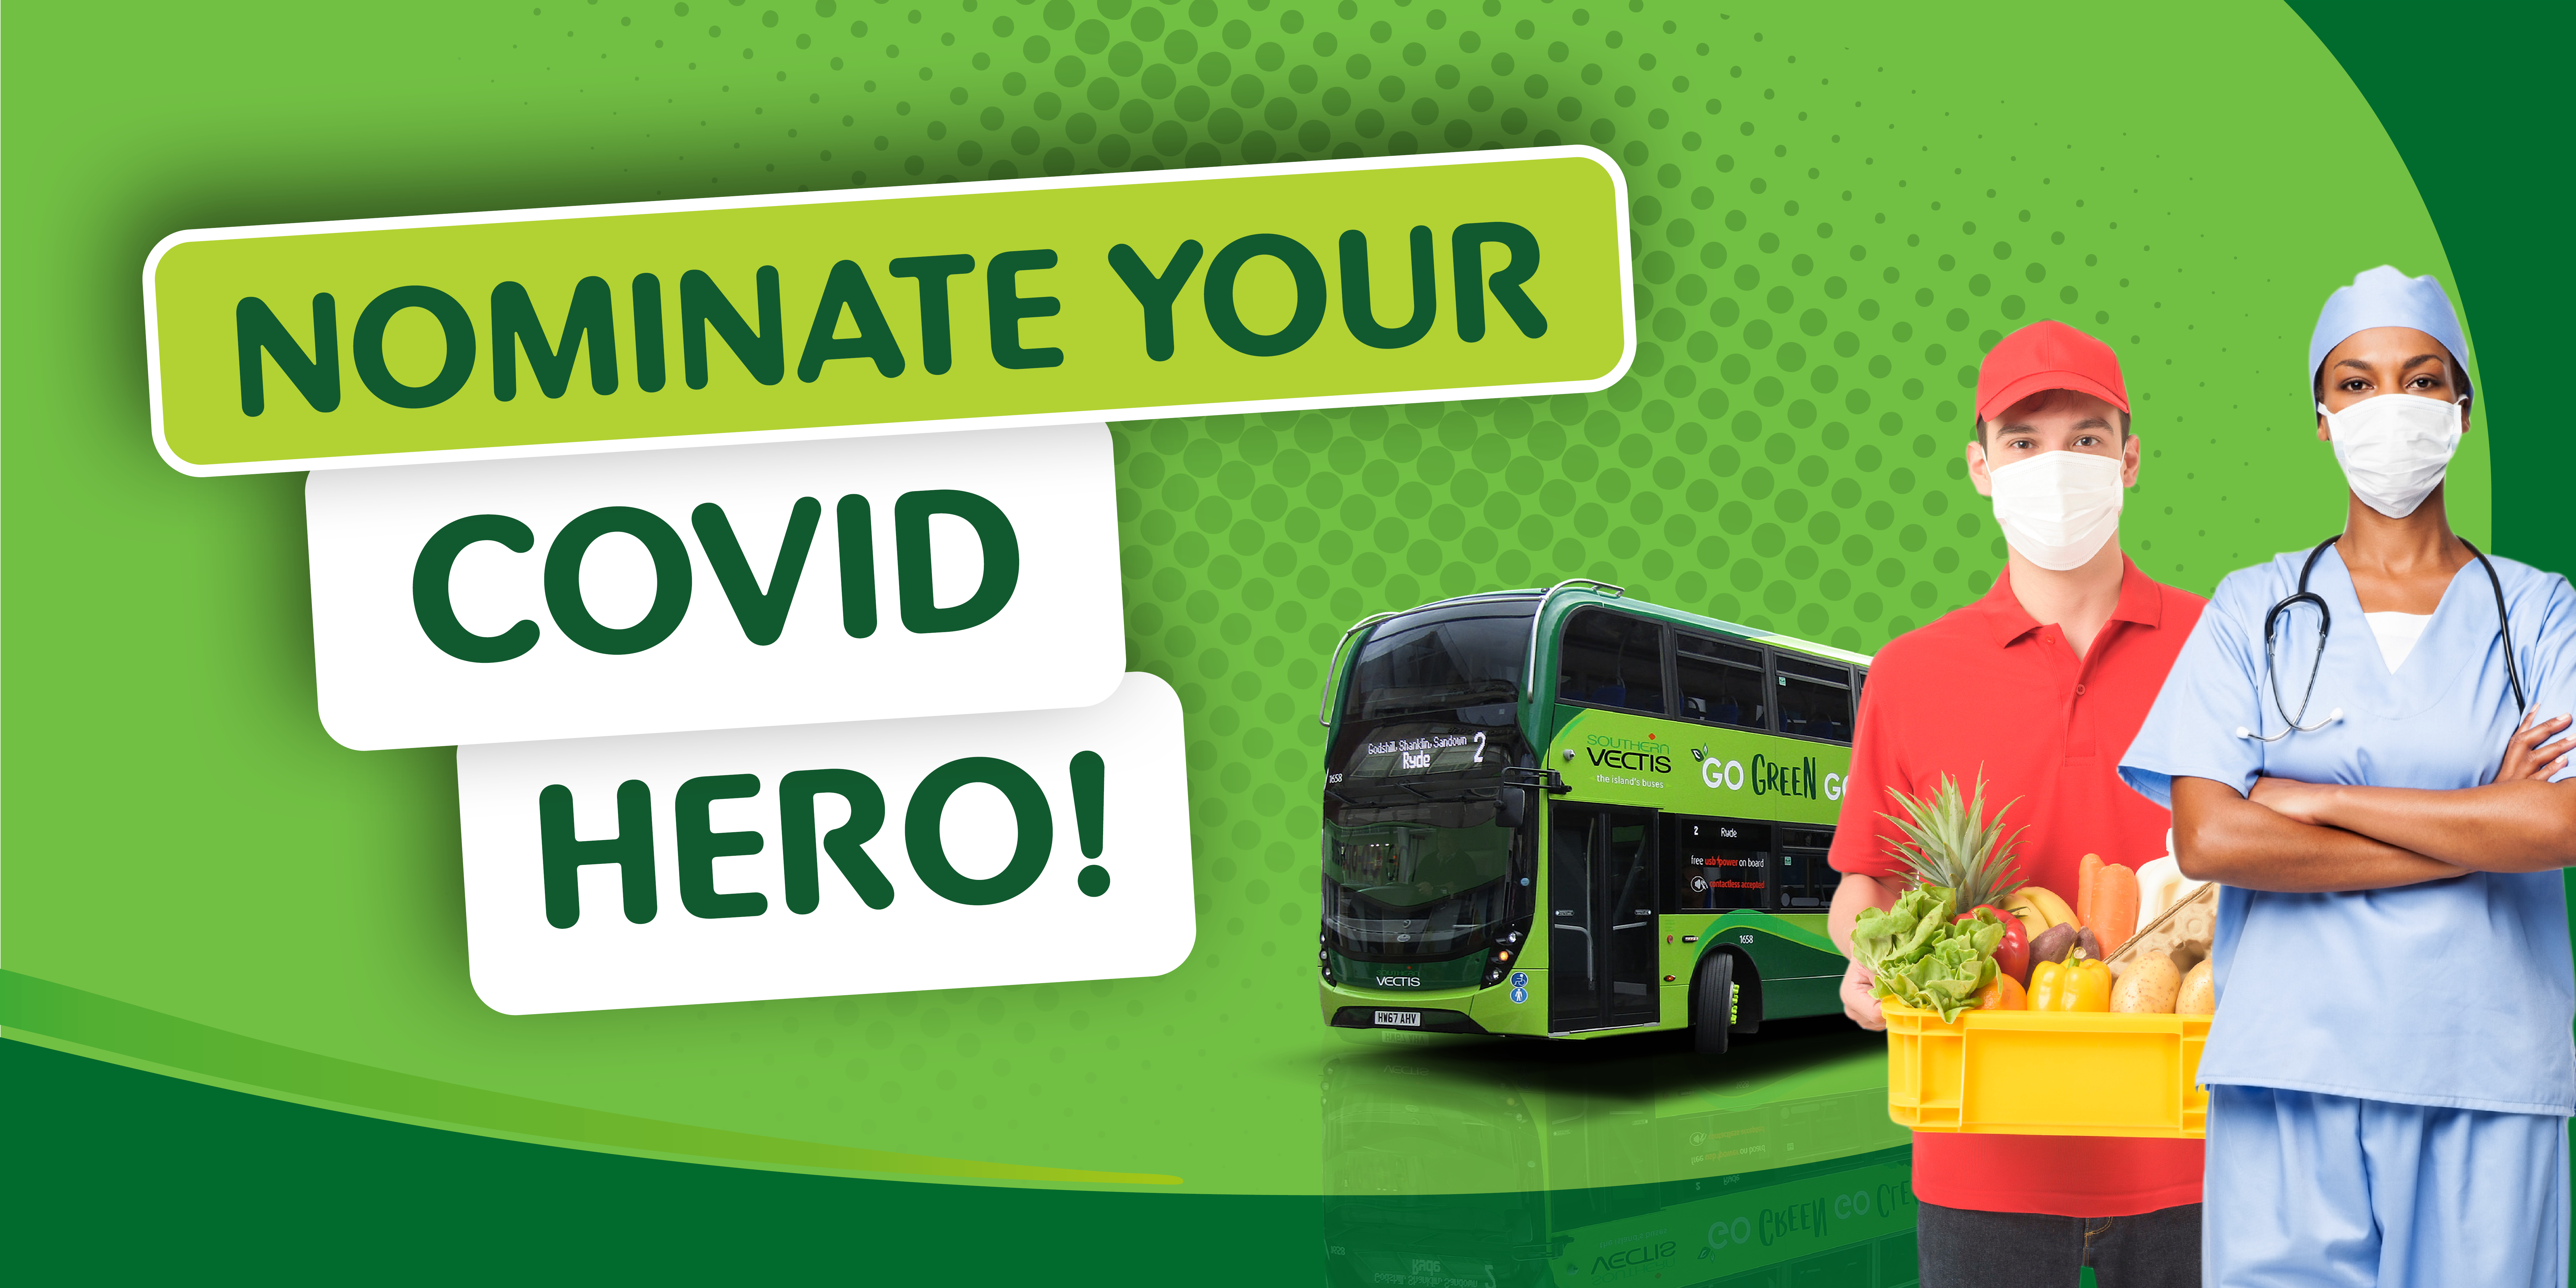 Image of a Southern Vectis bus with a nurse and food delivery personnel with text reading, 'nominate your covid hero!'